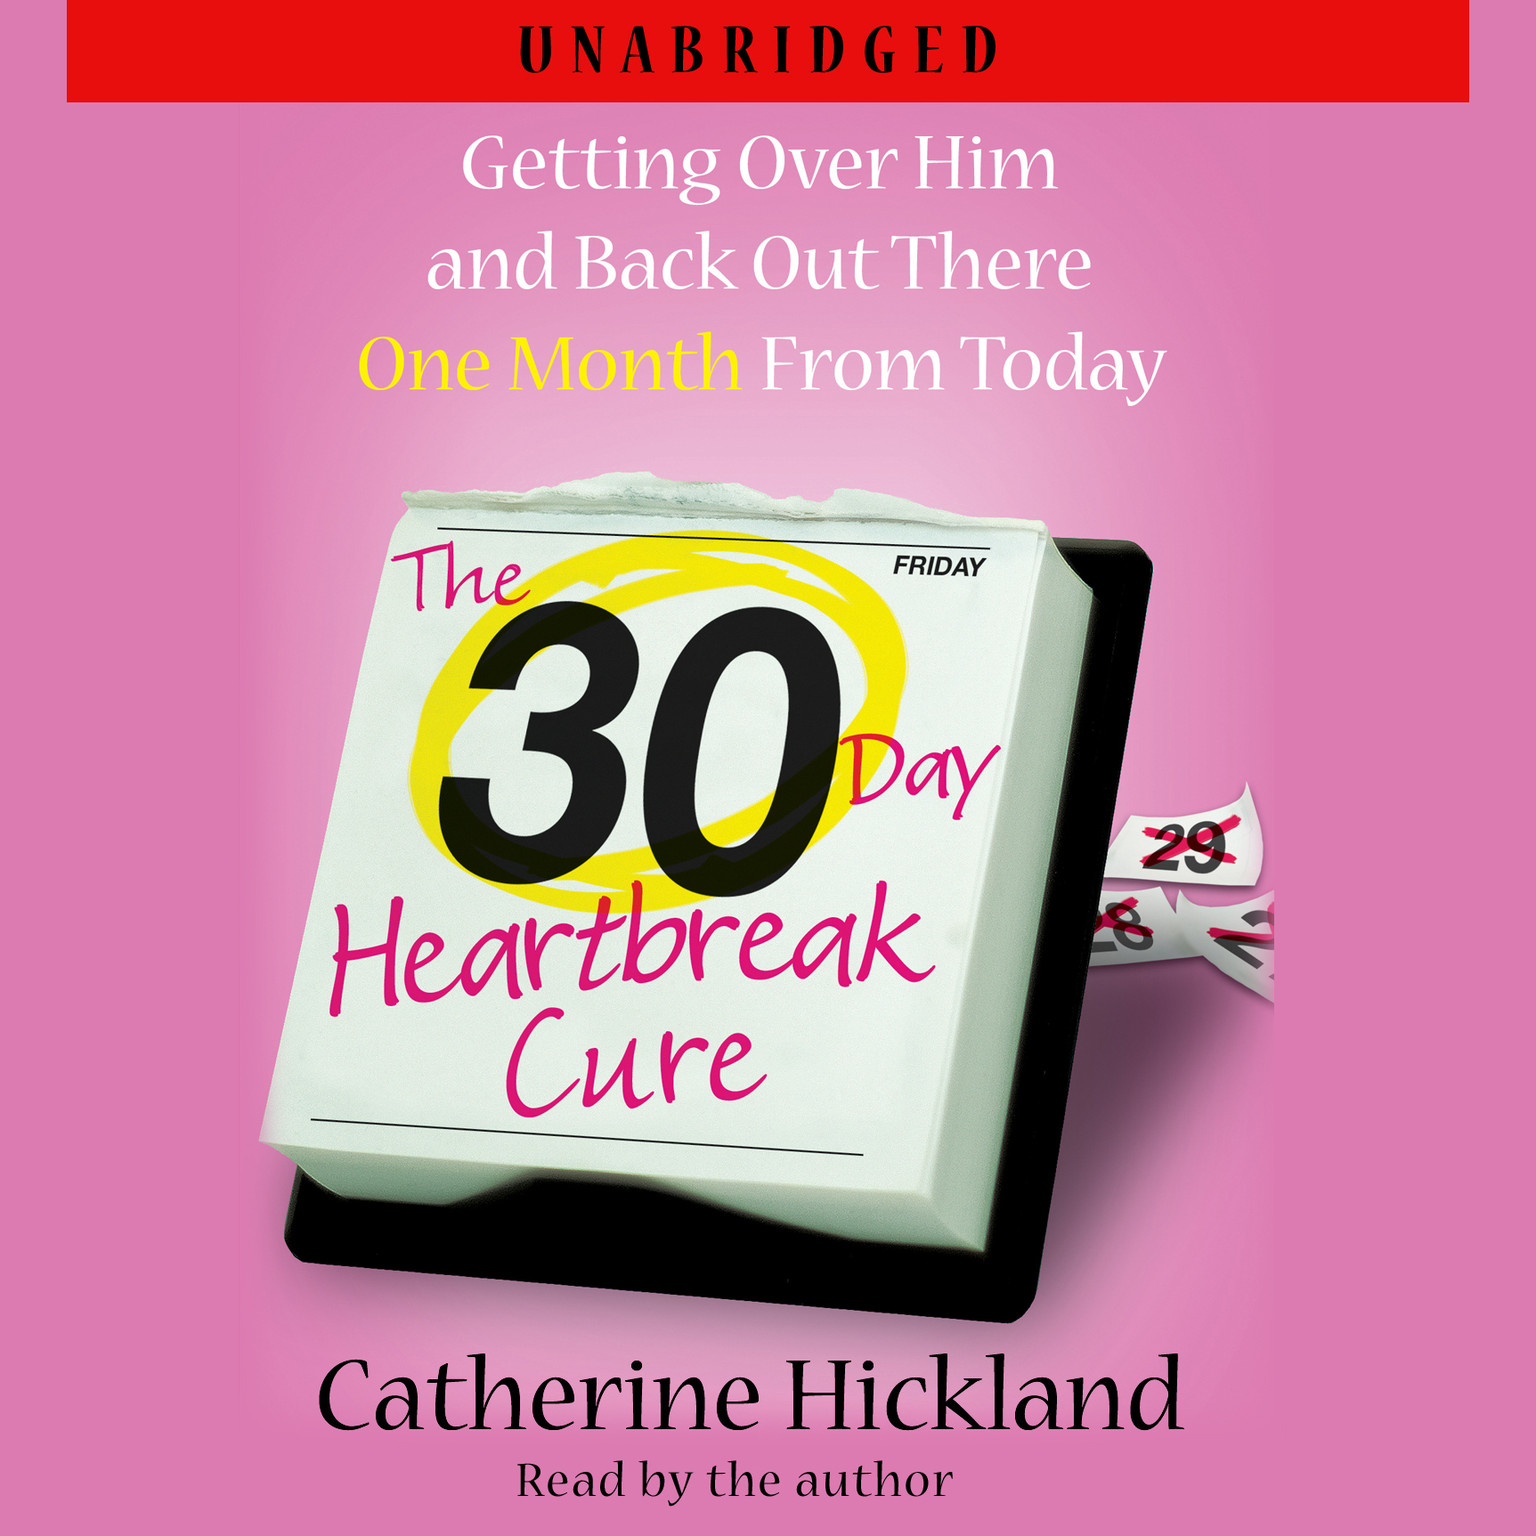 The 30-Day Heartbreak Cure: Getting Over Him and Back Out There One Month From Today Audiobook, by Catherine Hickland